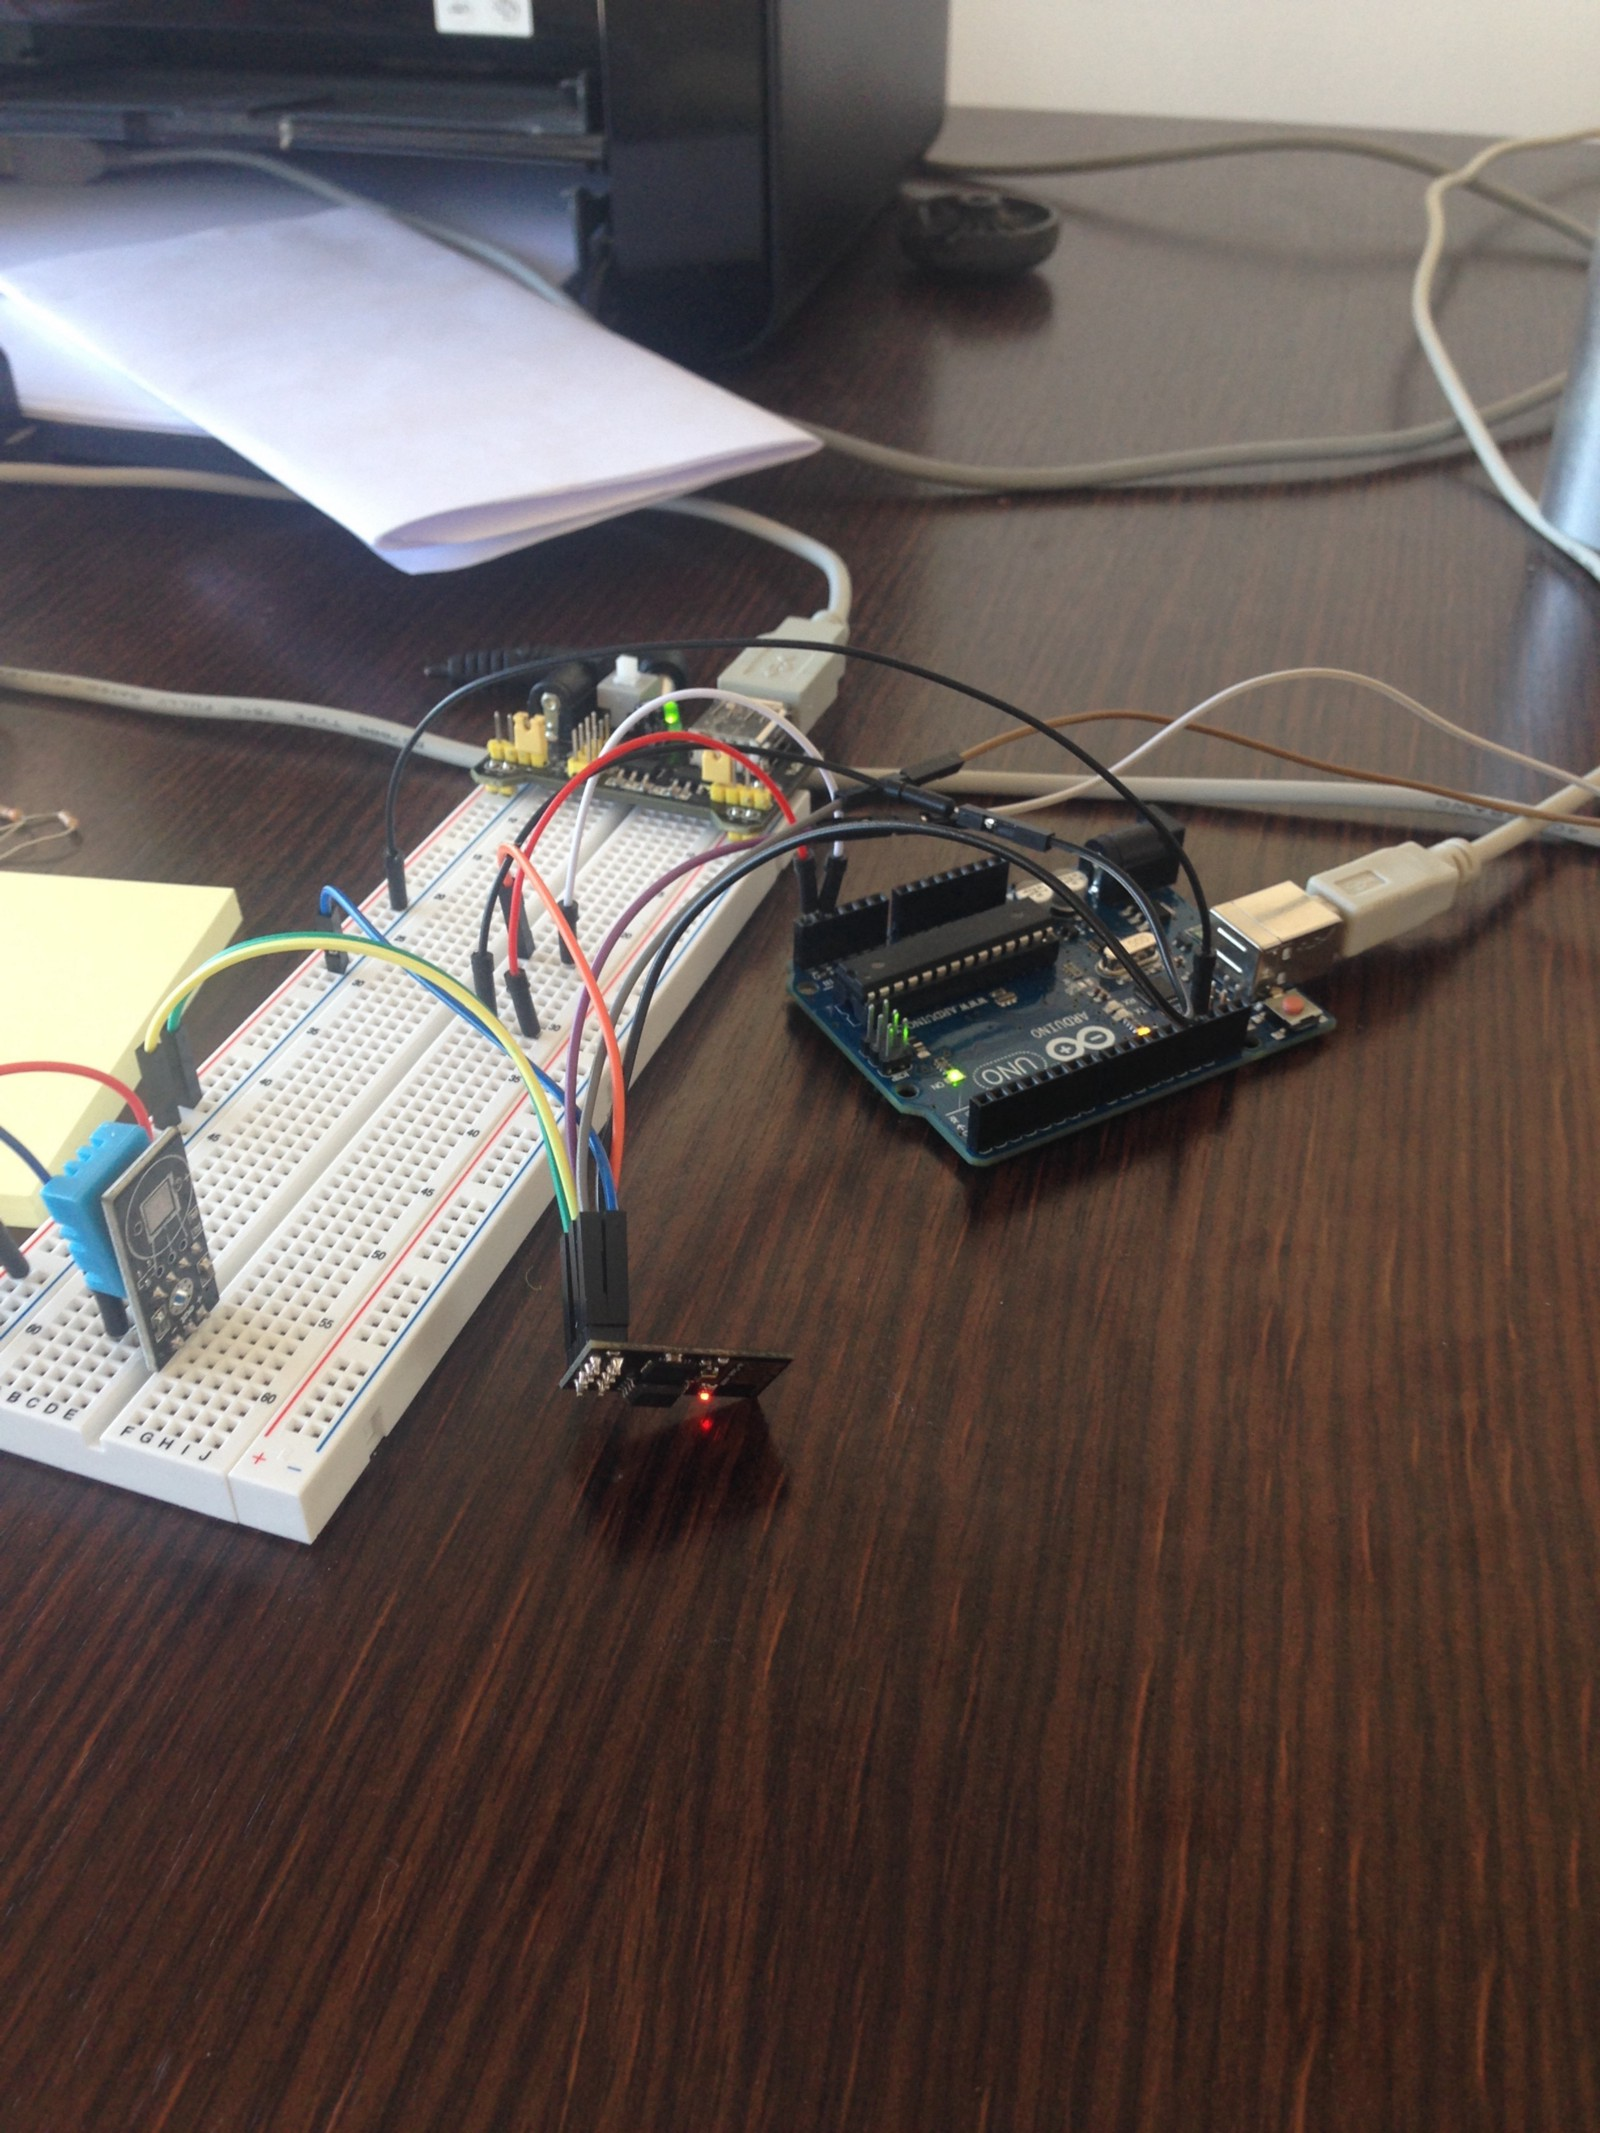 Arduino Esp8266 Through I2c Kruk Matias Medium Wiring Mega Uno Slave And Esp826601 Master